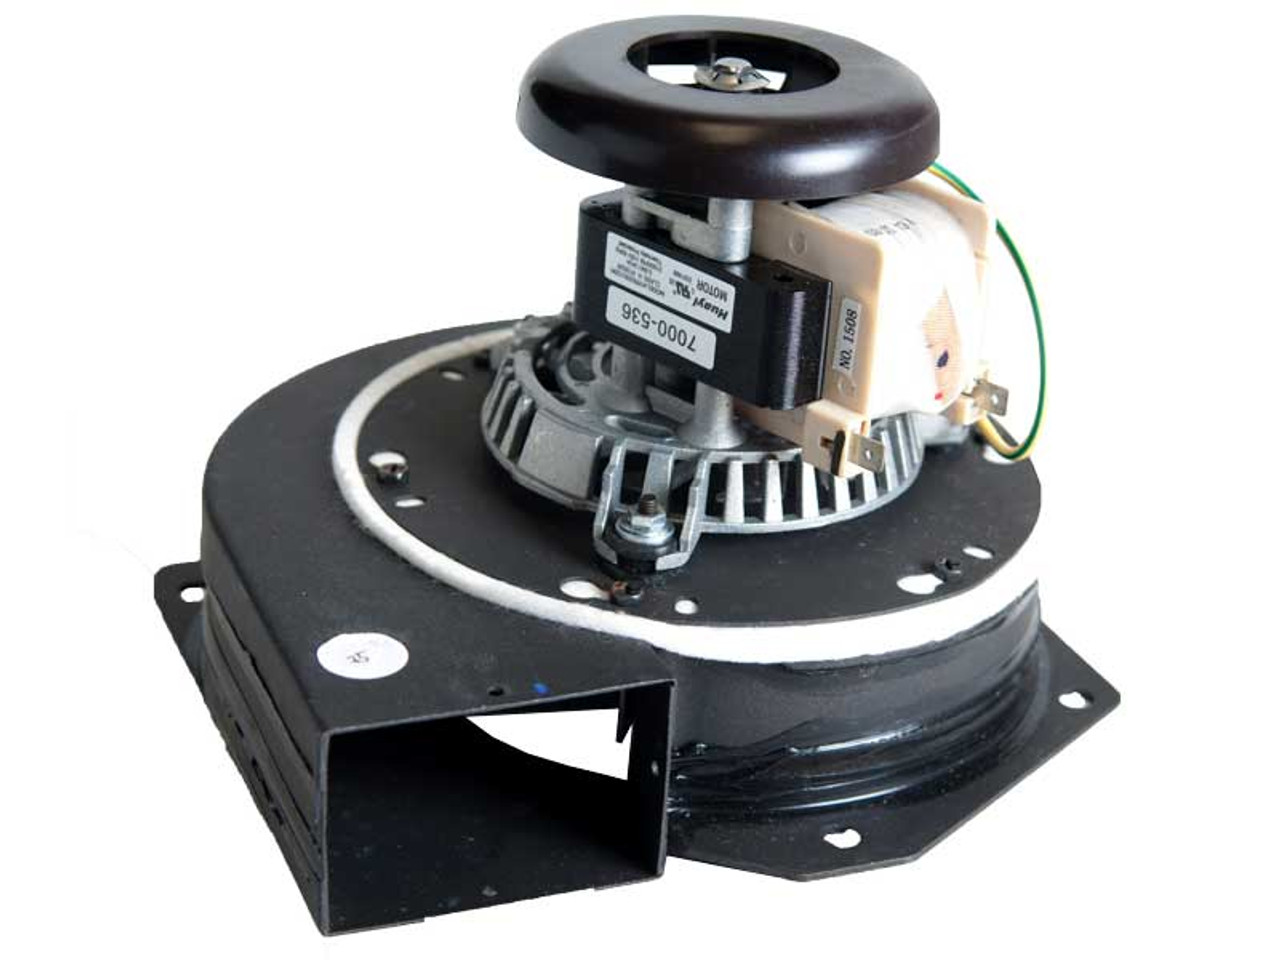 Quadra-Fire 1200 Classic Bay Pellet Exhaust Combustion Blower Motor Assembly # 812-3381